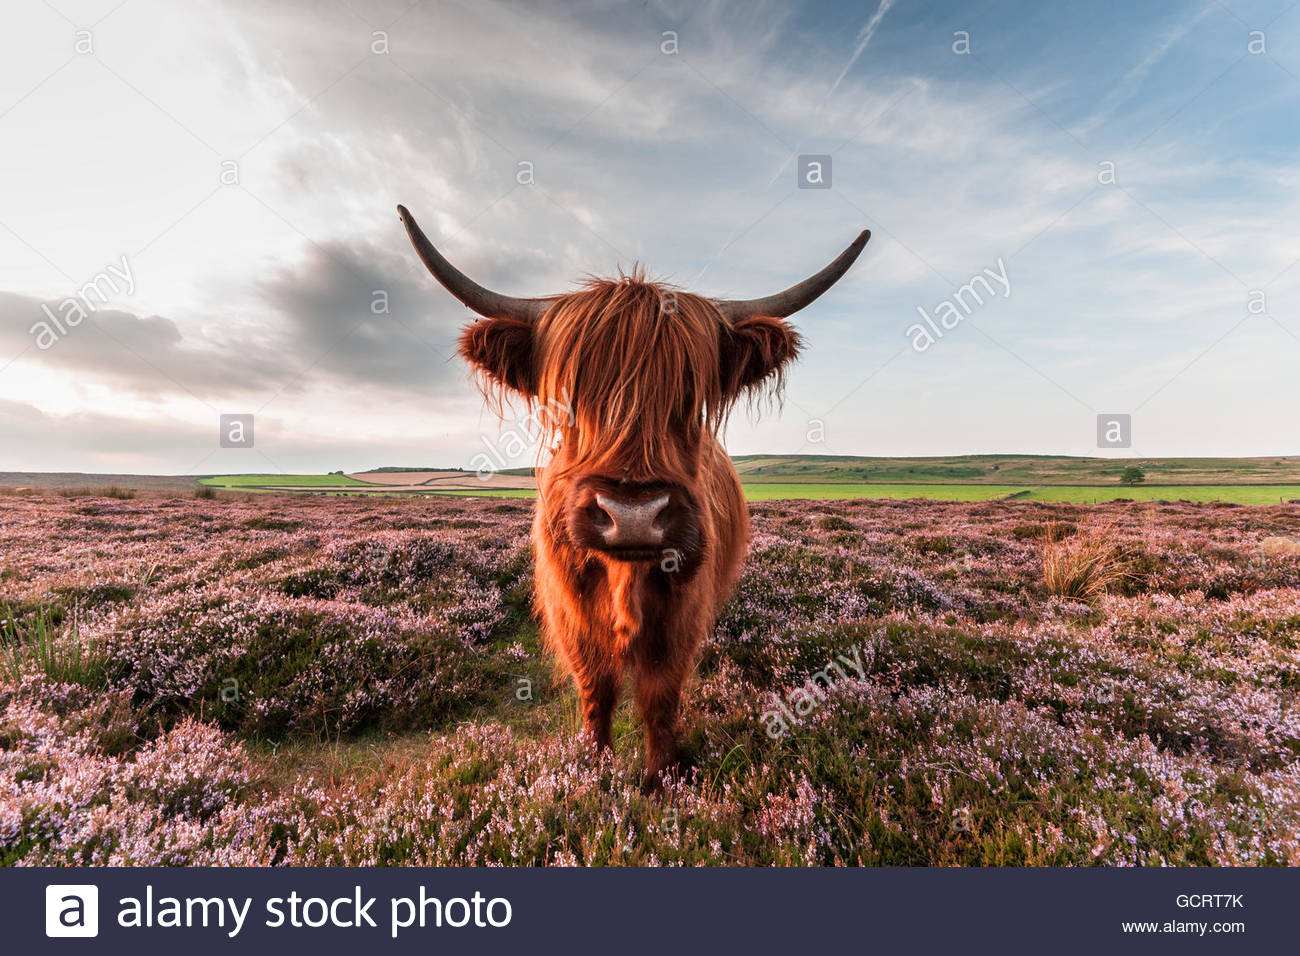 Baslow Highland Cow - Are You Looking At Me - Stock Image